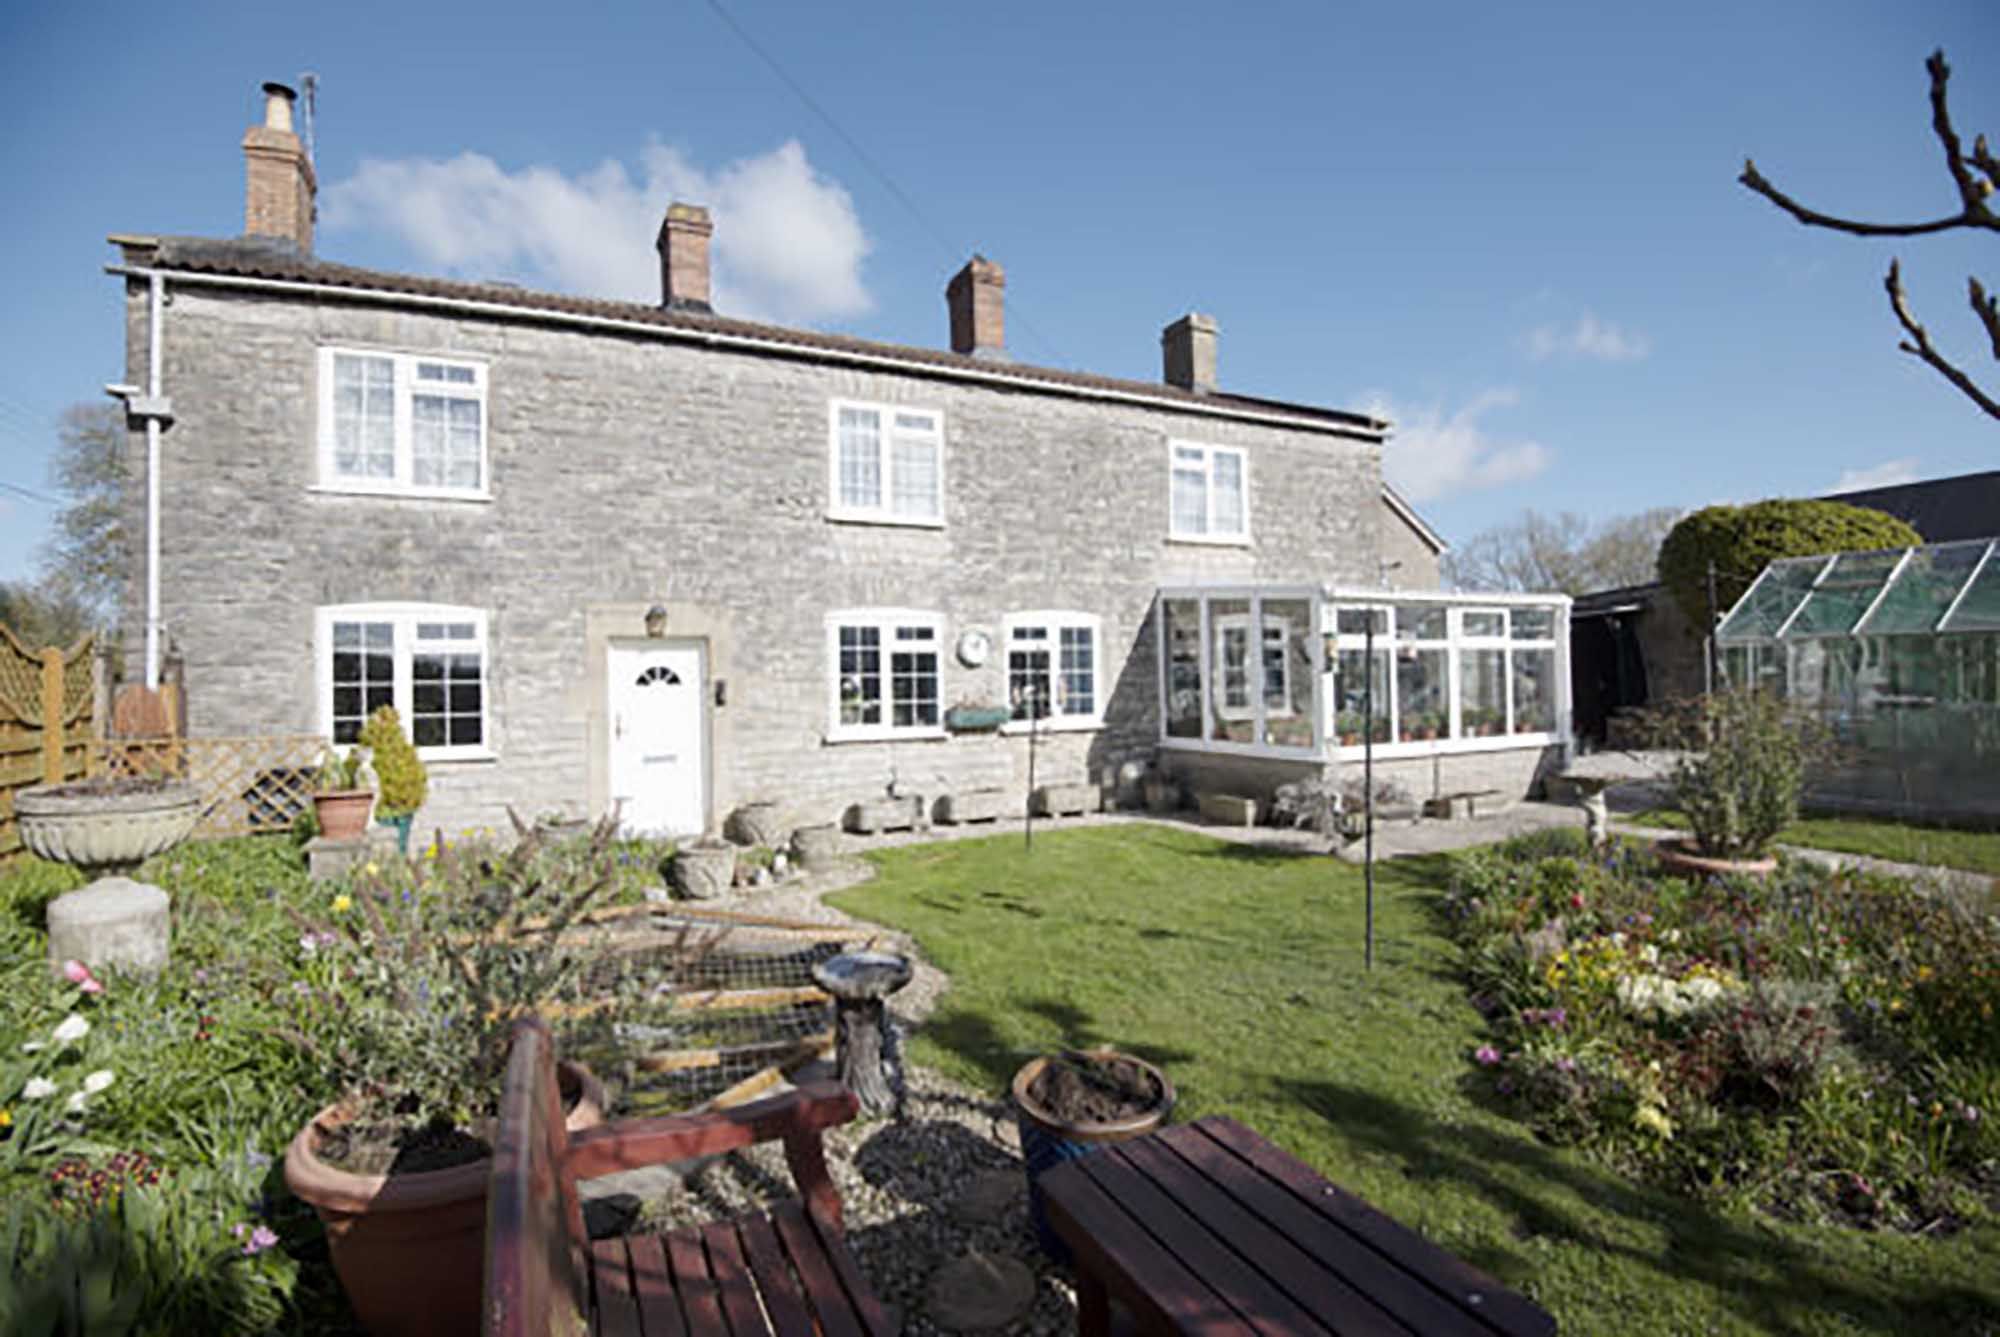 Nr Bruton-4 bed cottage with potential to extend